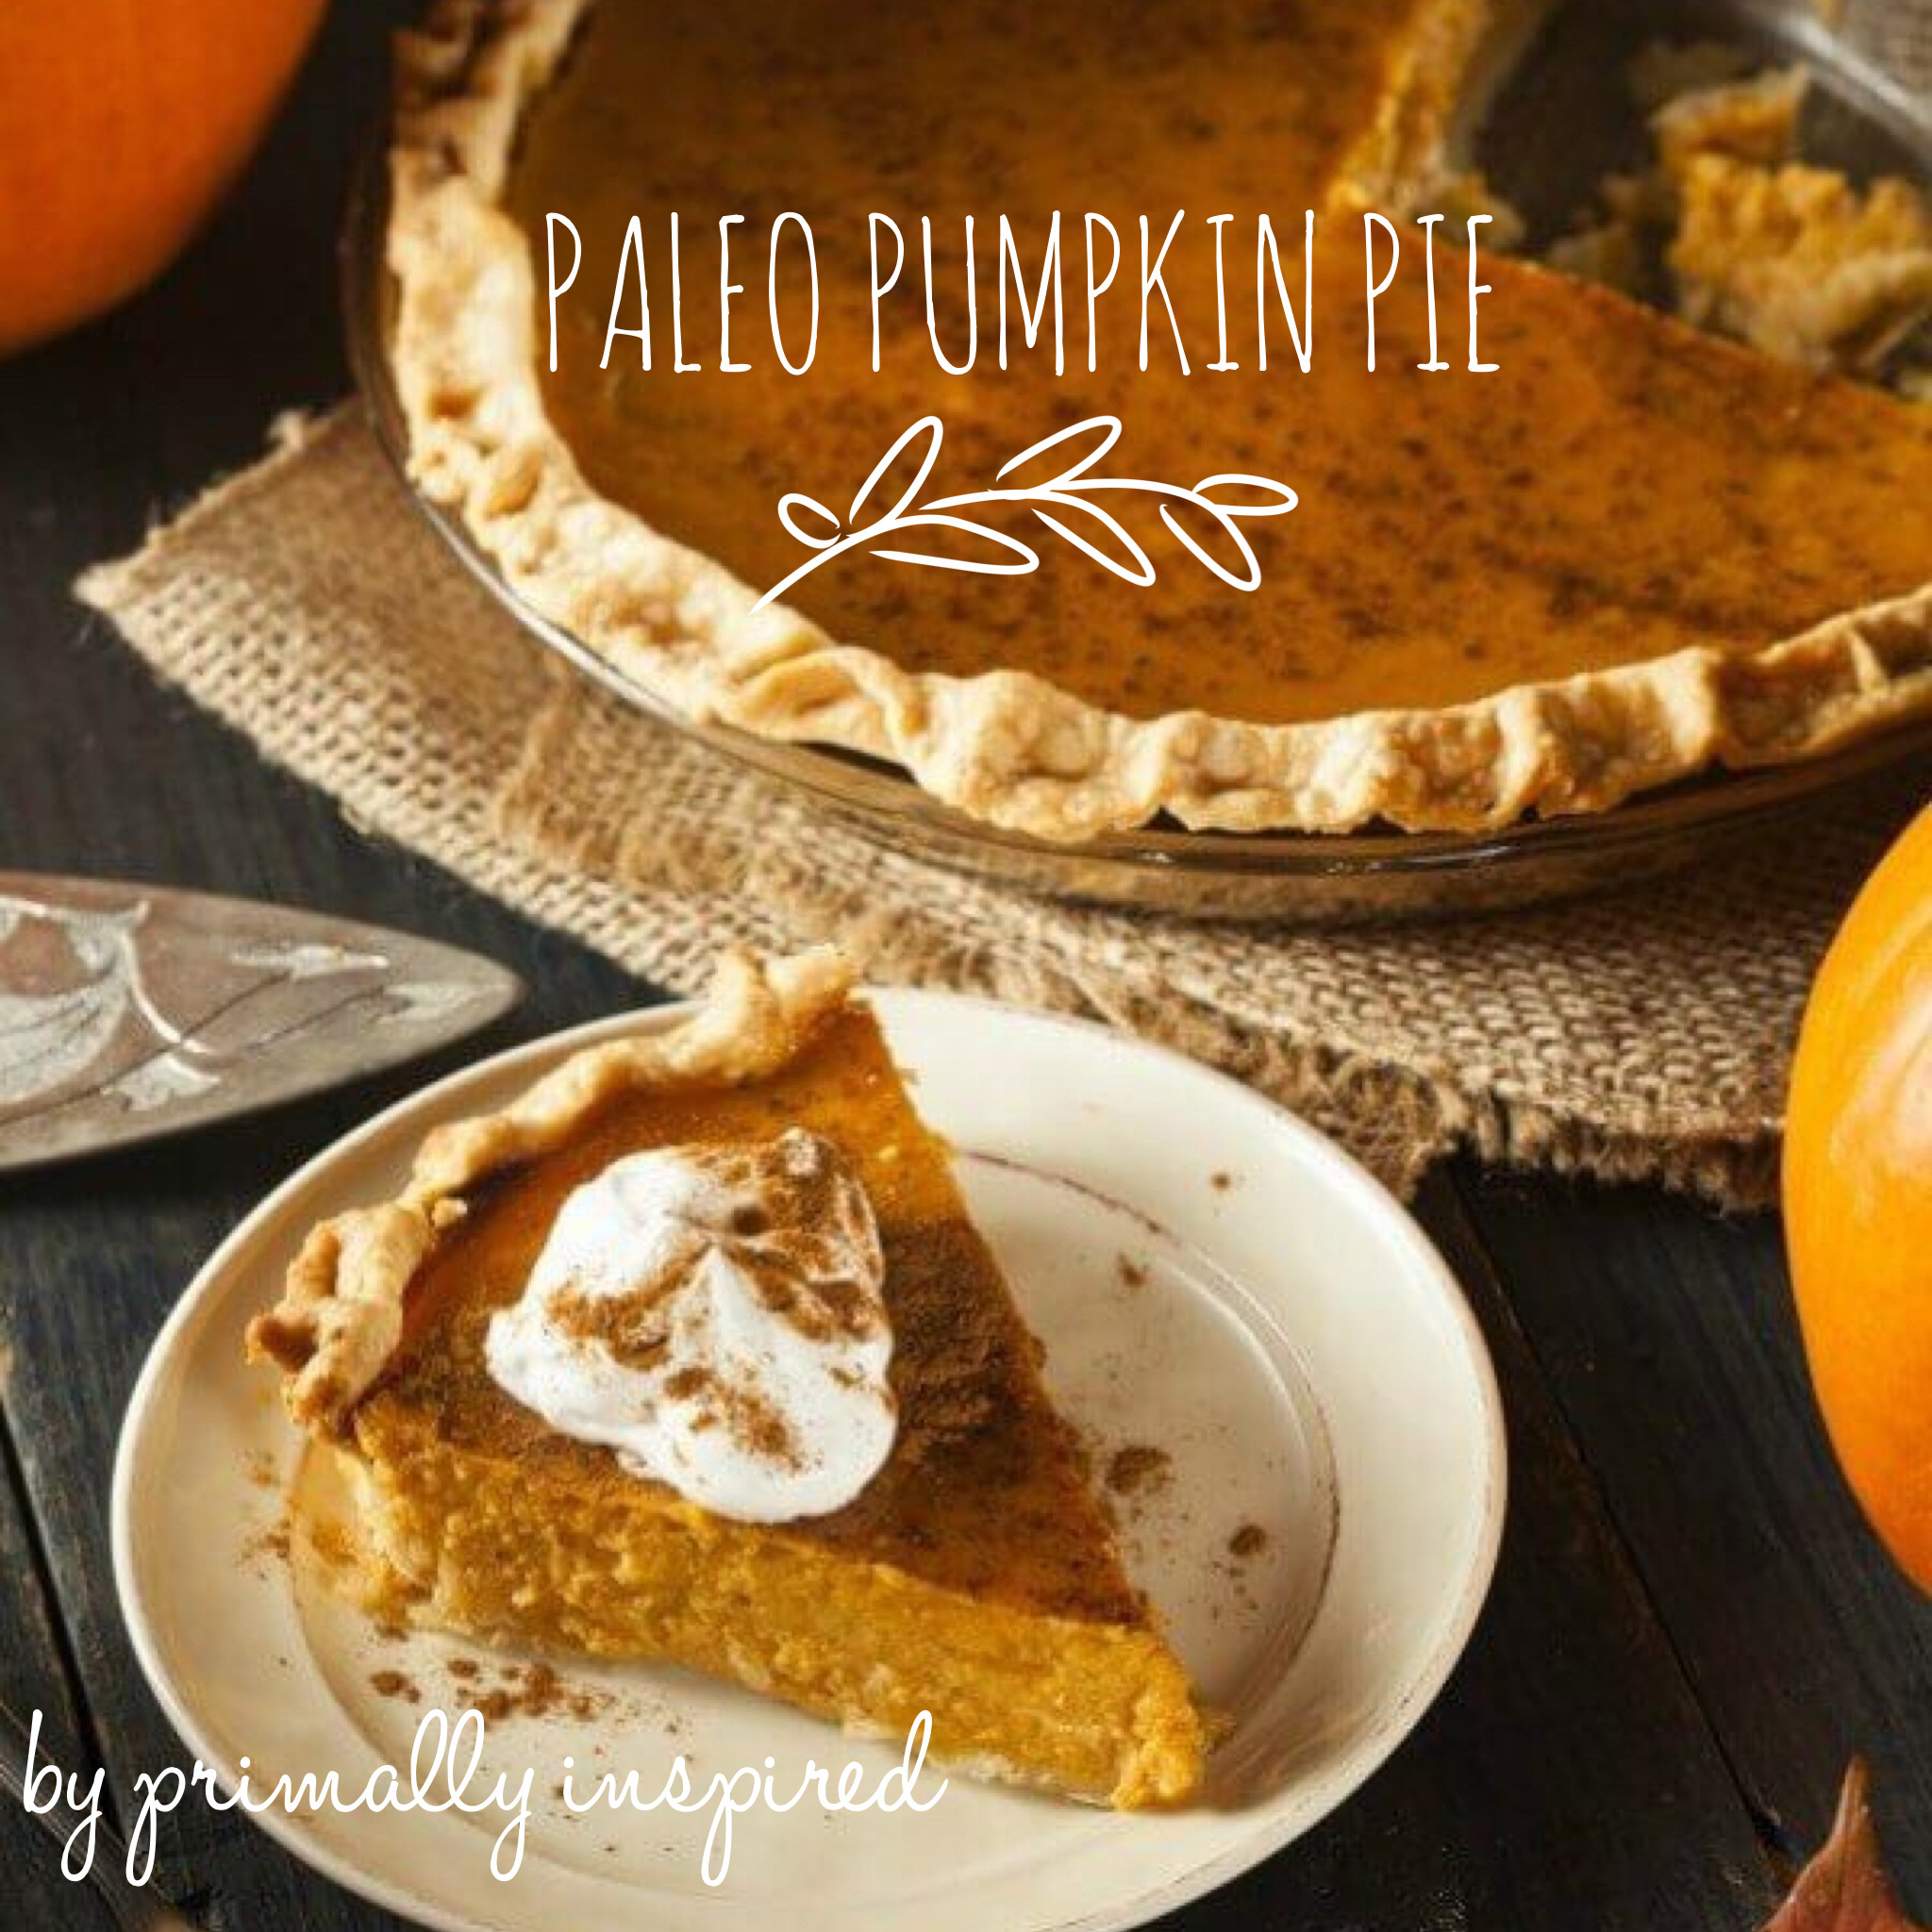 Paleo Pumpkin Pie  Foo Friday 11 20 15 – Yummy Clean and often Paleo